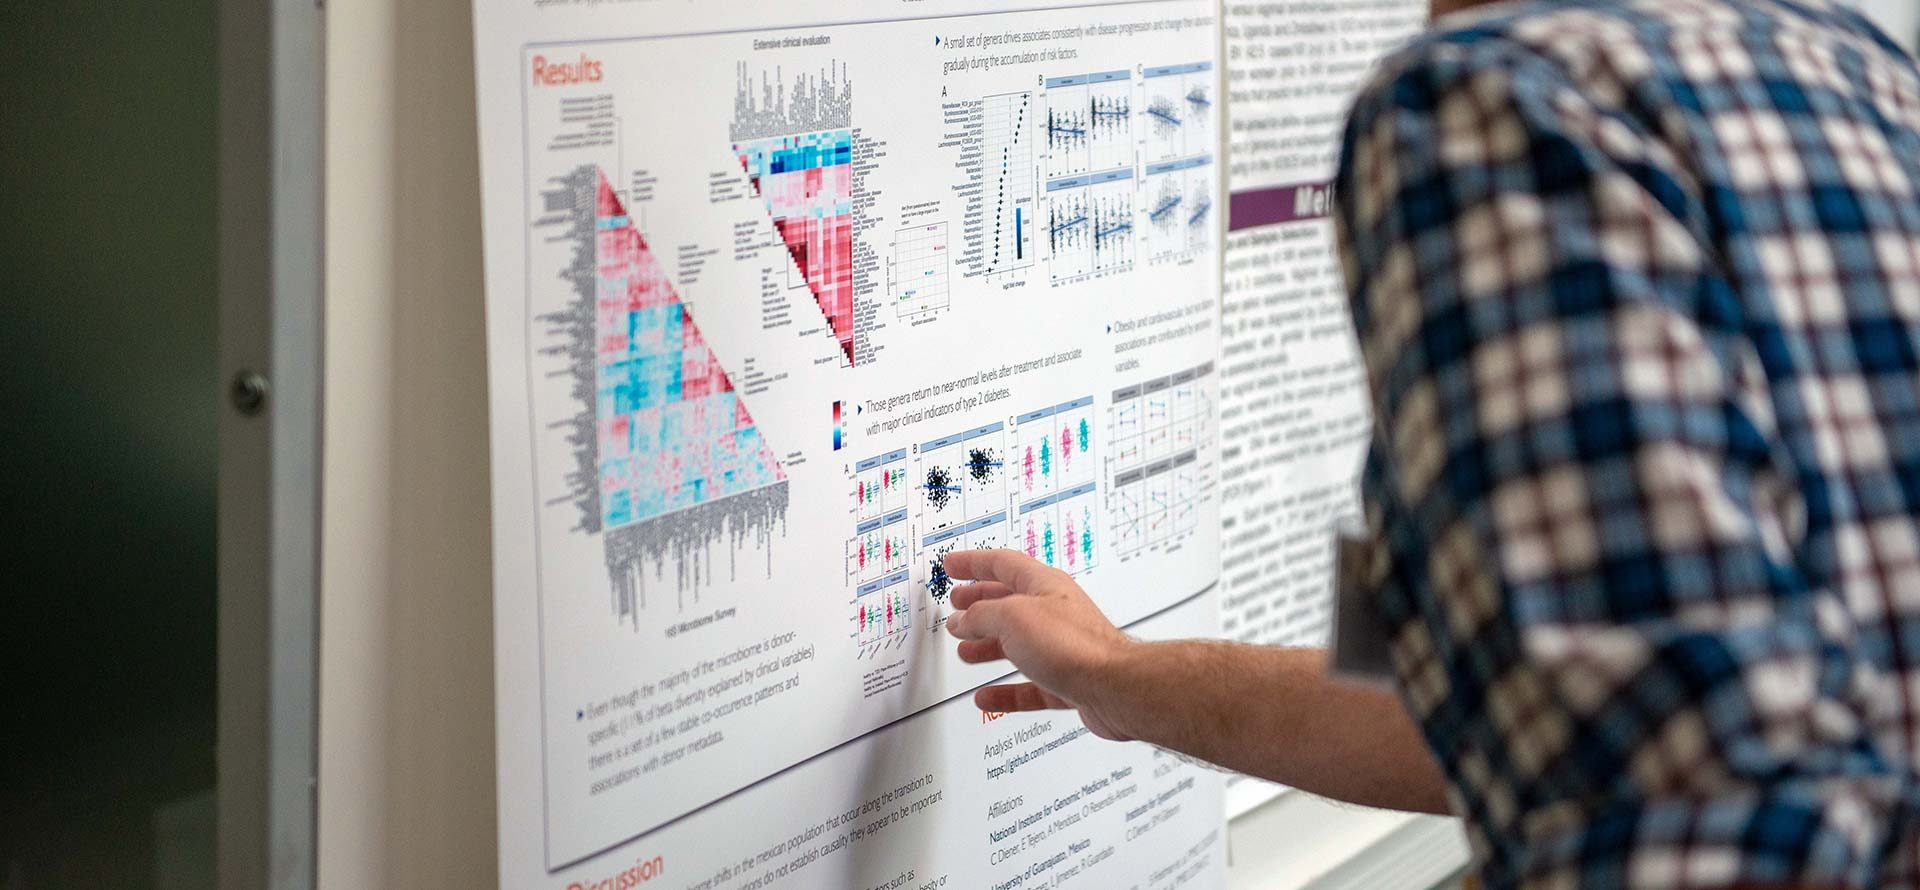 A poster board session at the 2018 Microbiome Symposium at the Fred Hutchinson Cancer Research Center